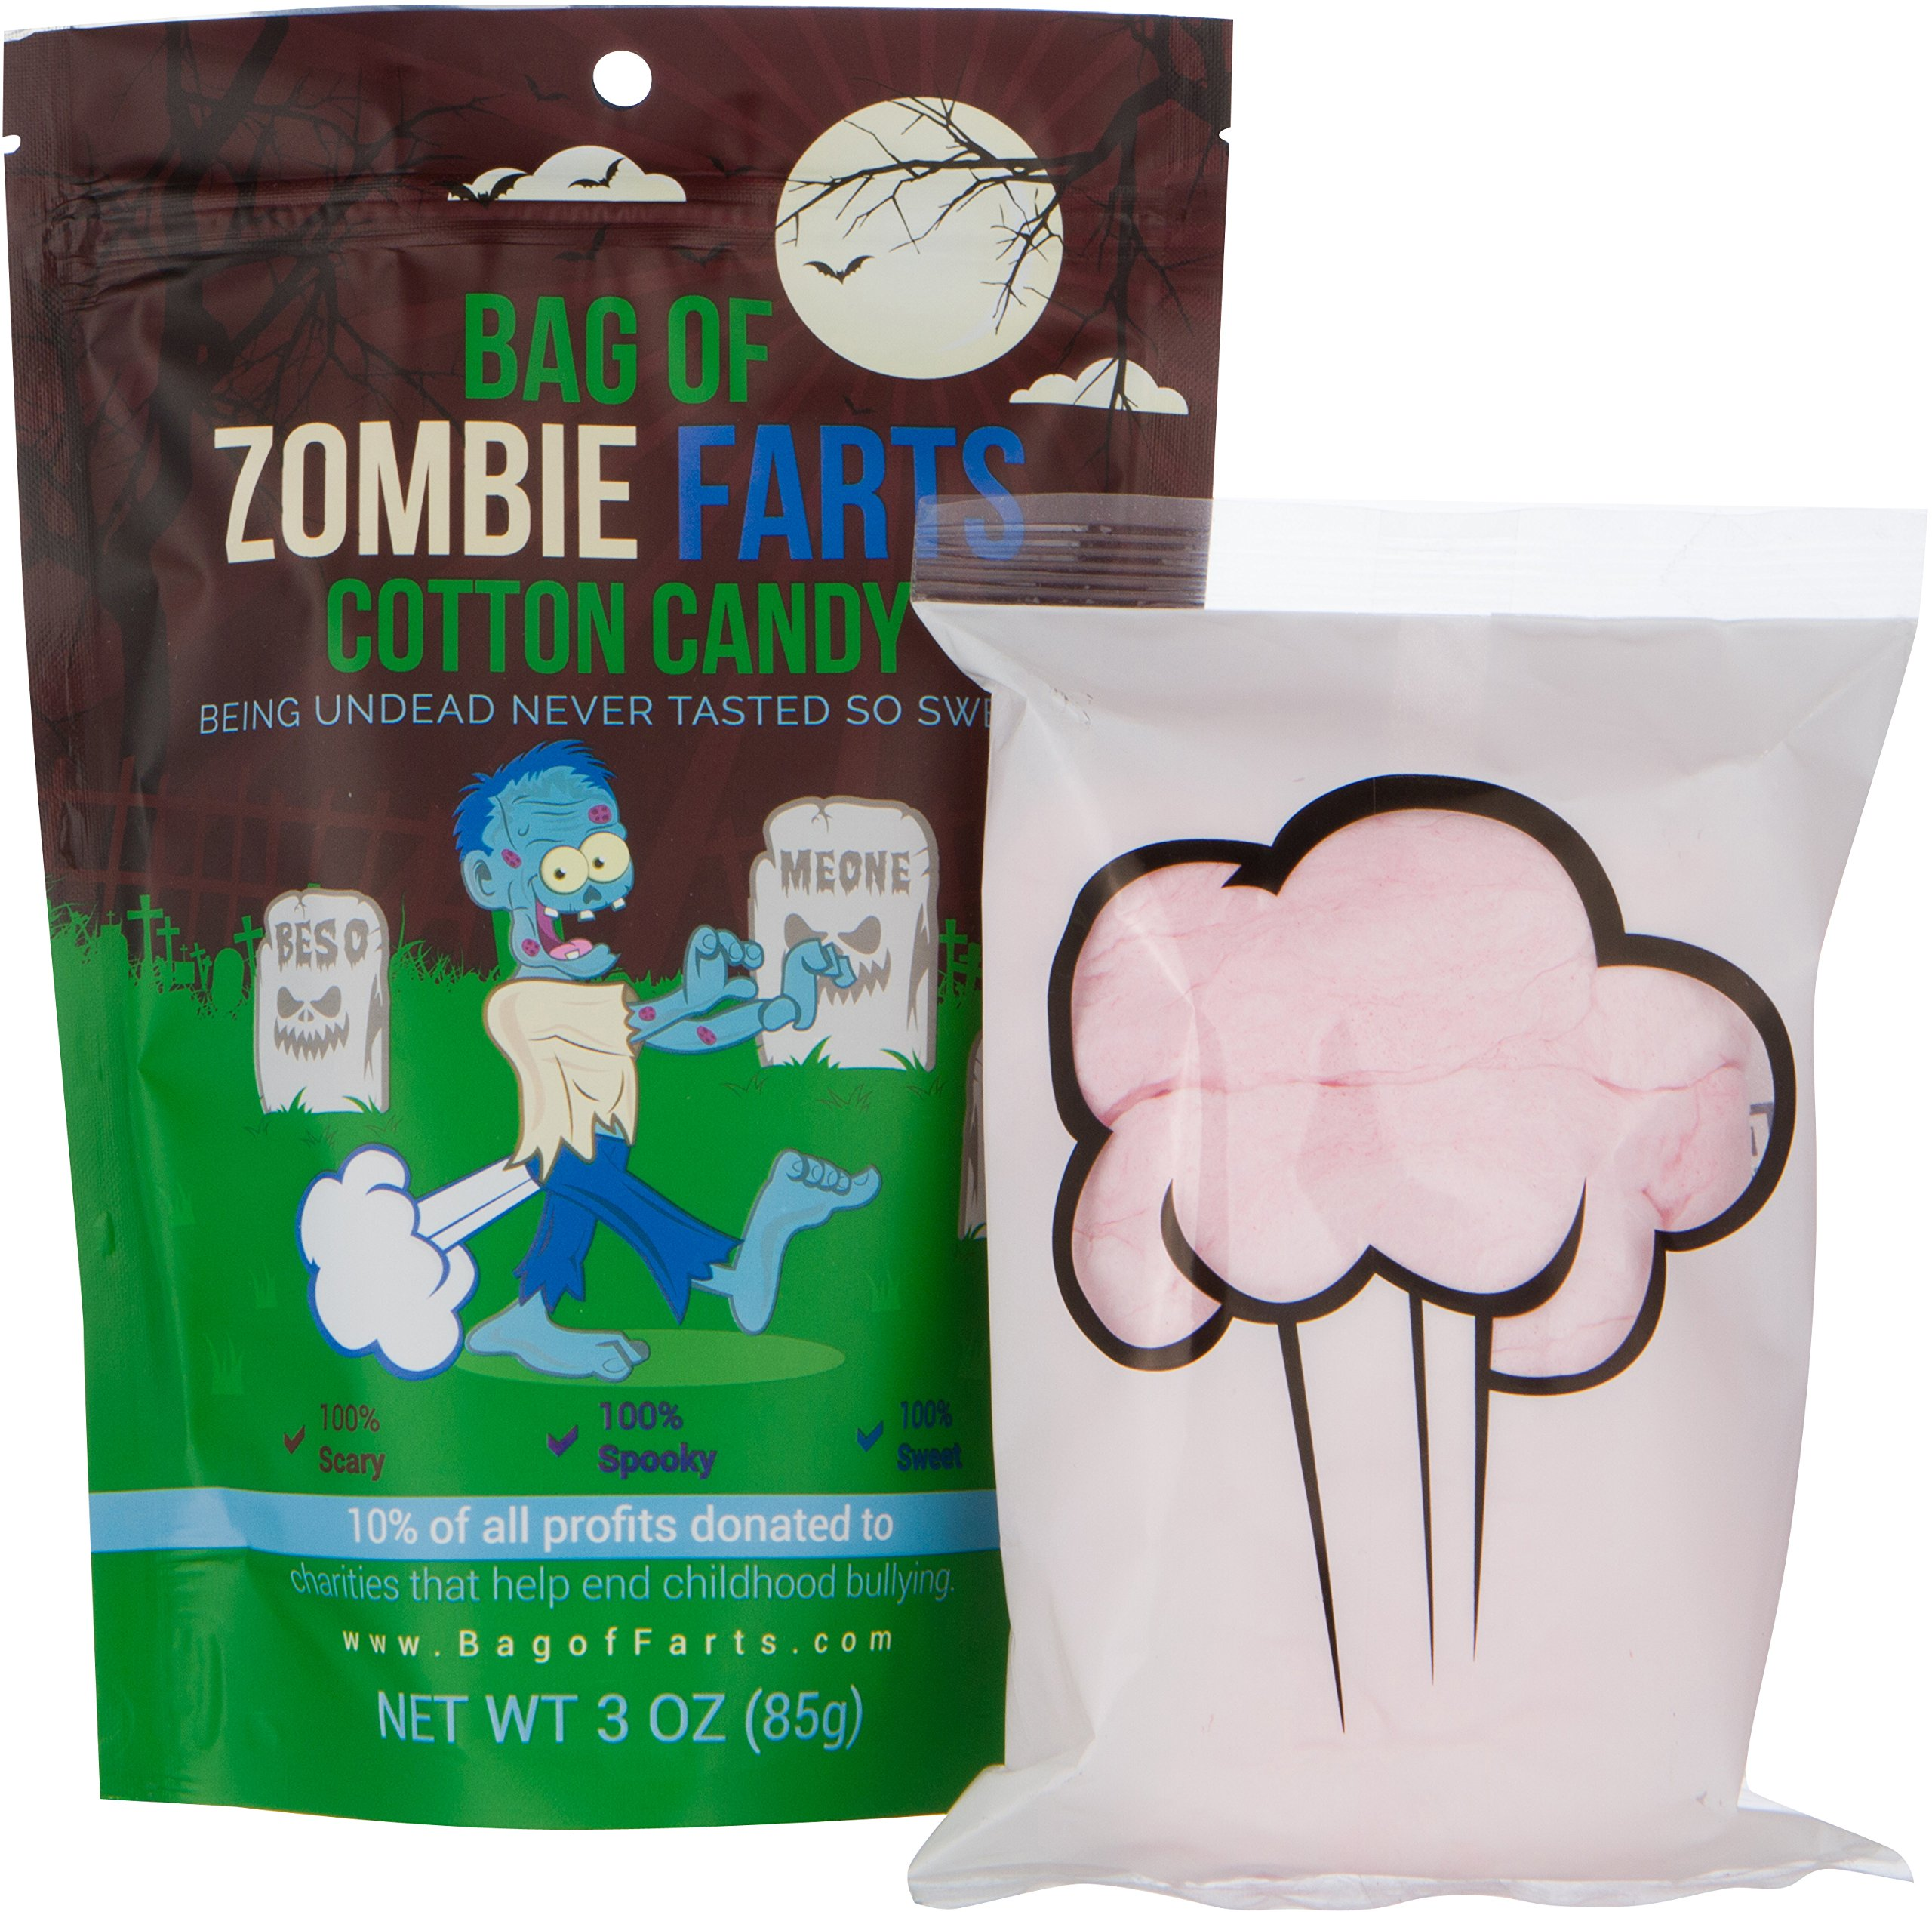 Amazon harcos lime zombie blood energy potion 34 ounces bag of farts cotton candy funny for all ages unique birthday gag gift for friends negle Image collections